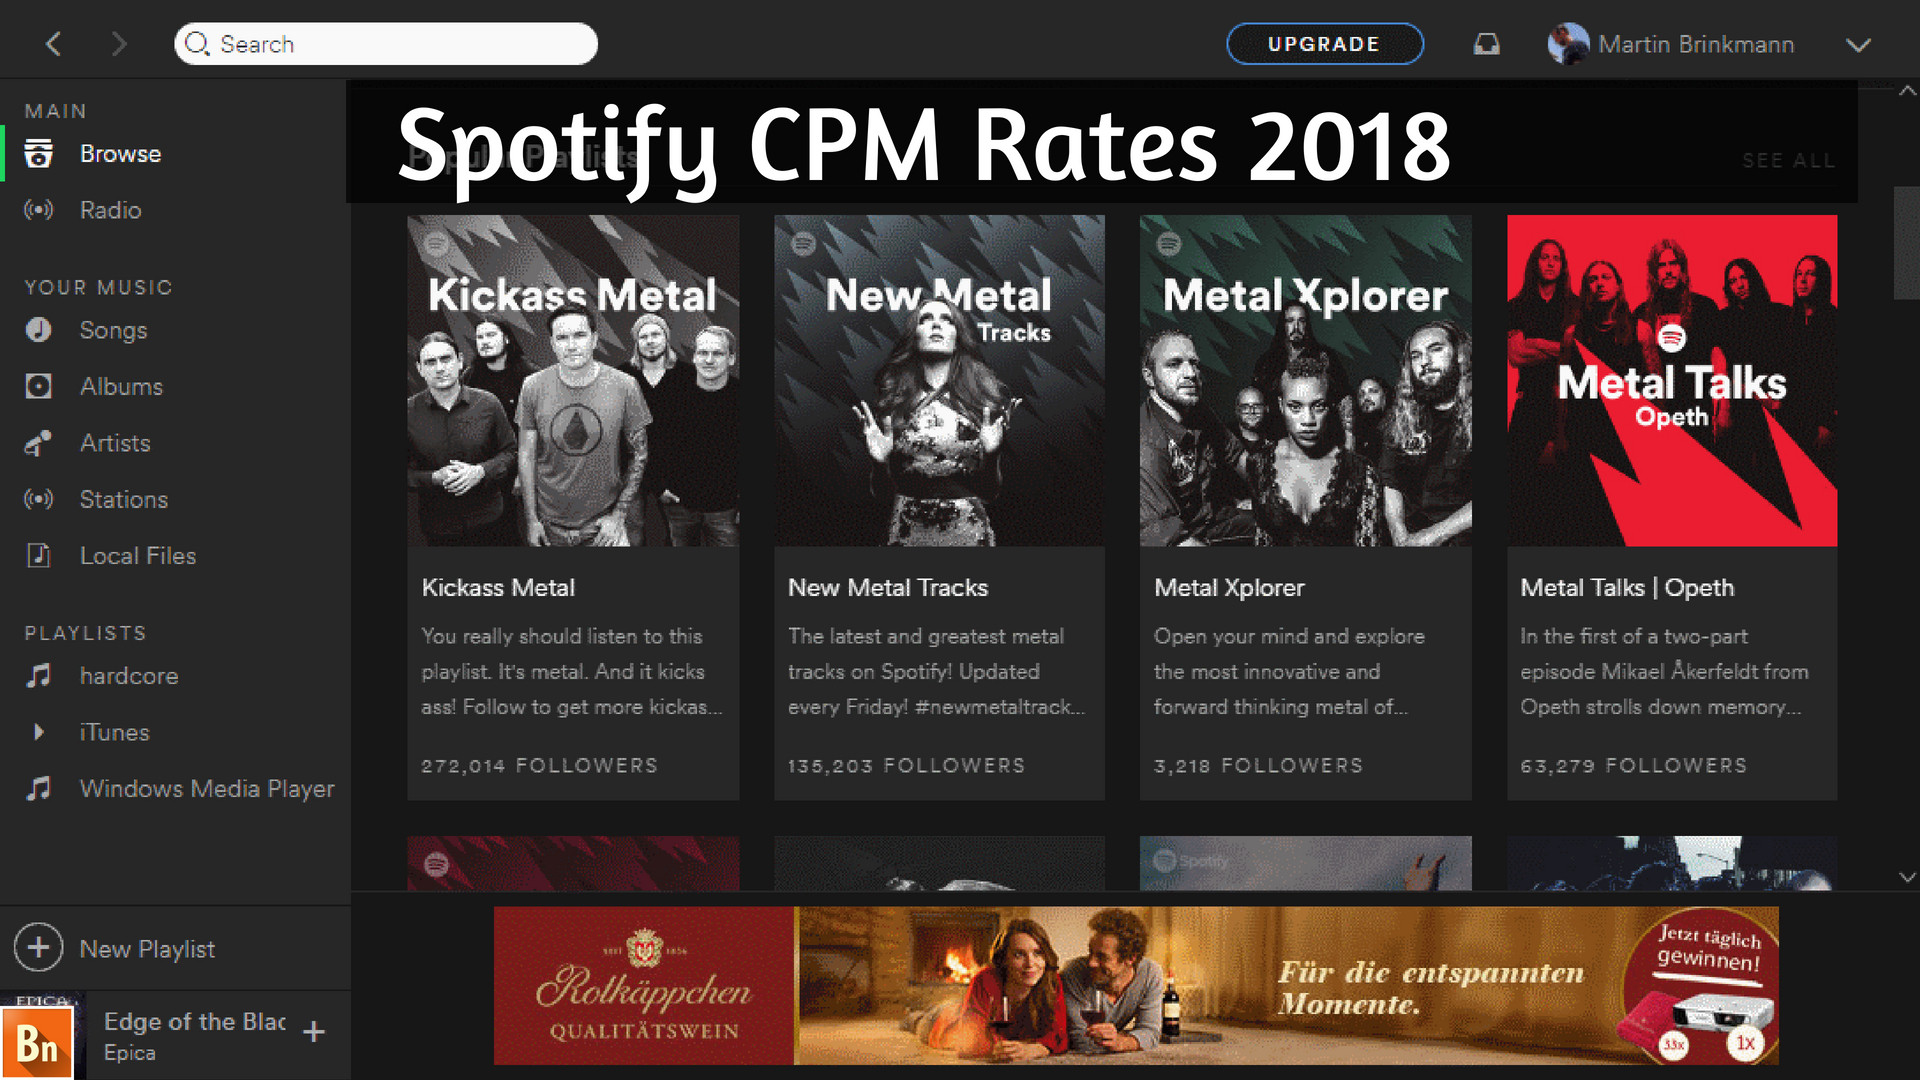 Spotify CPM Rates 2019